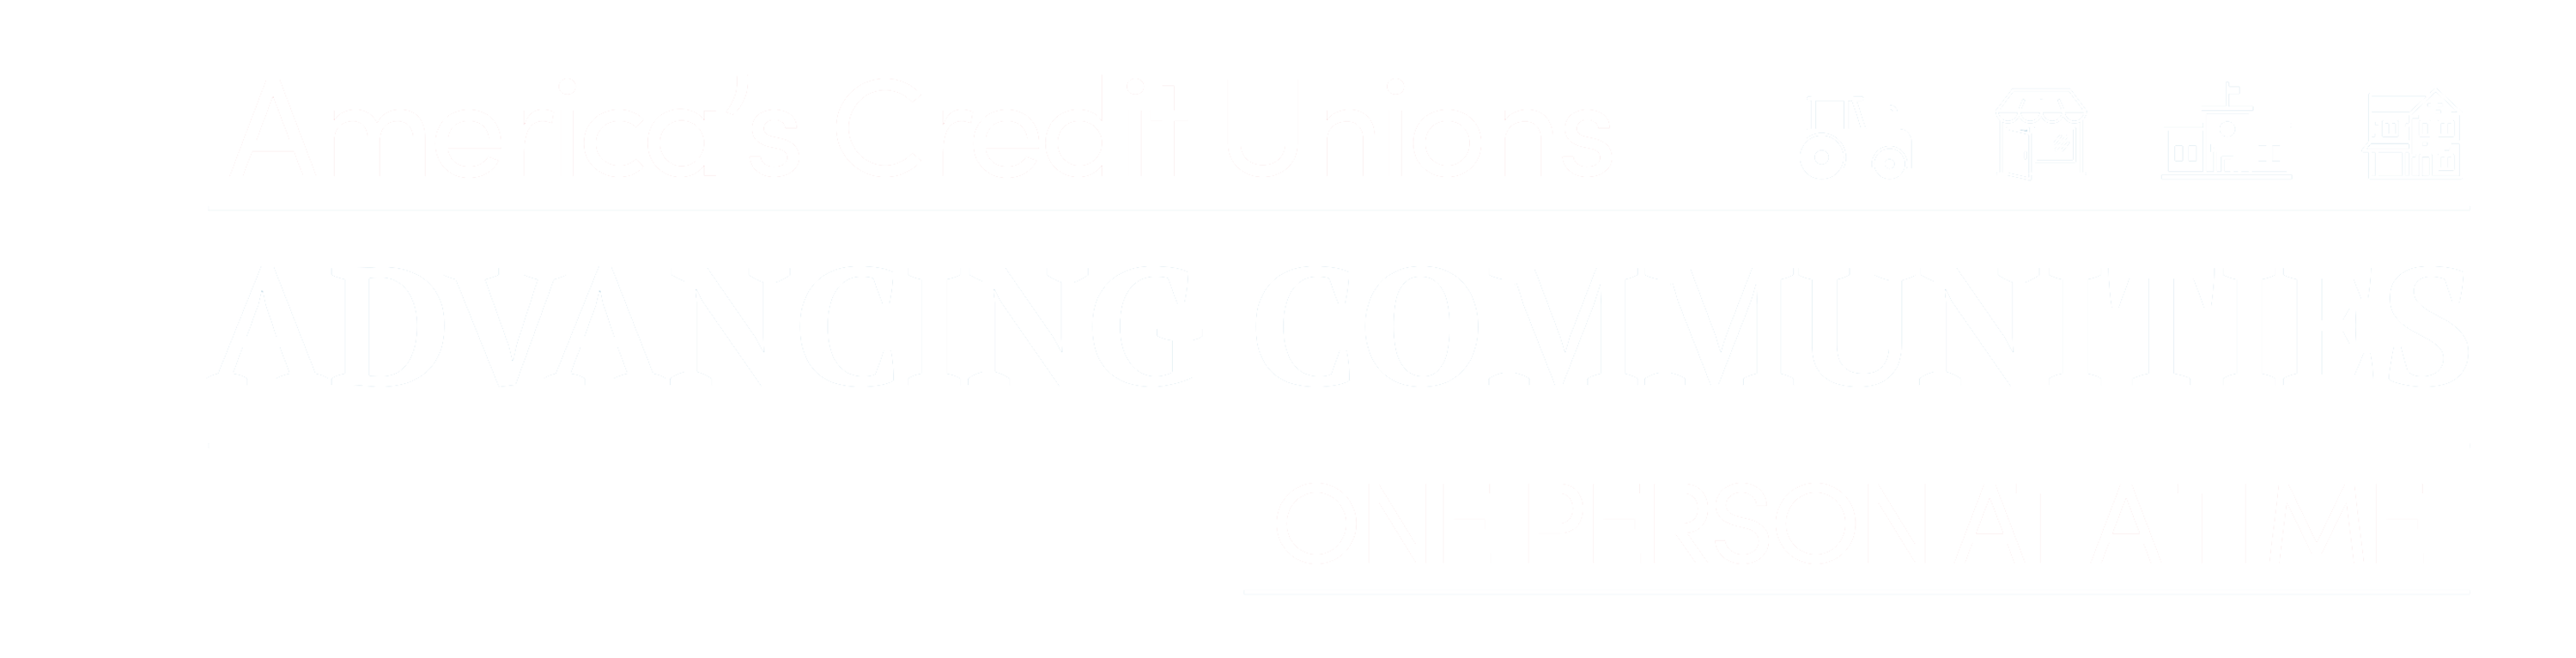 Credit Unions: Advancing Communities